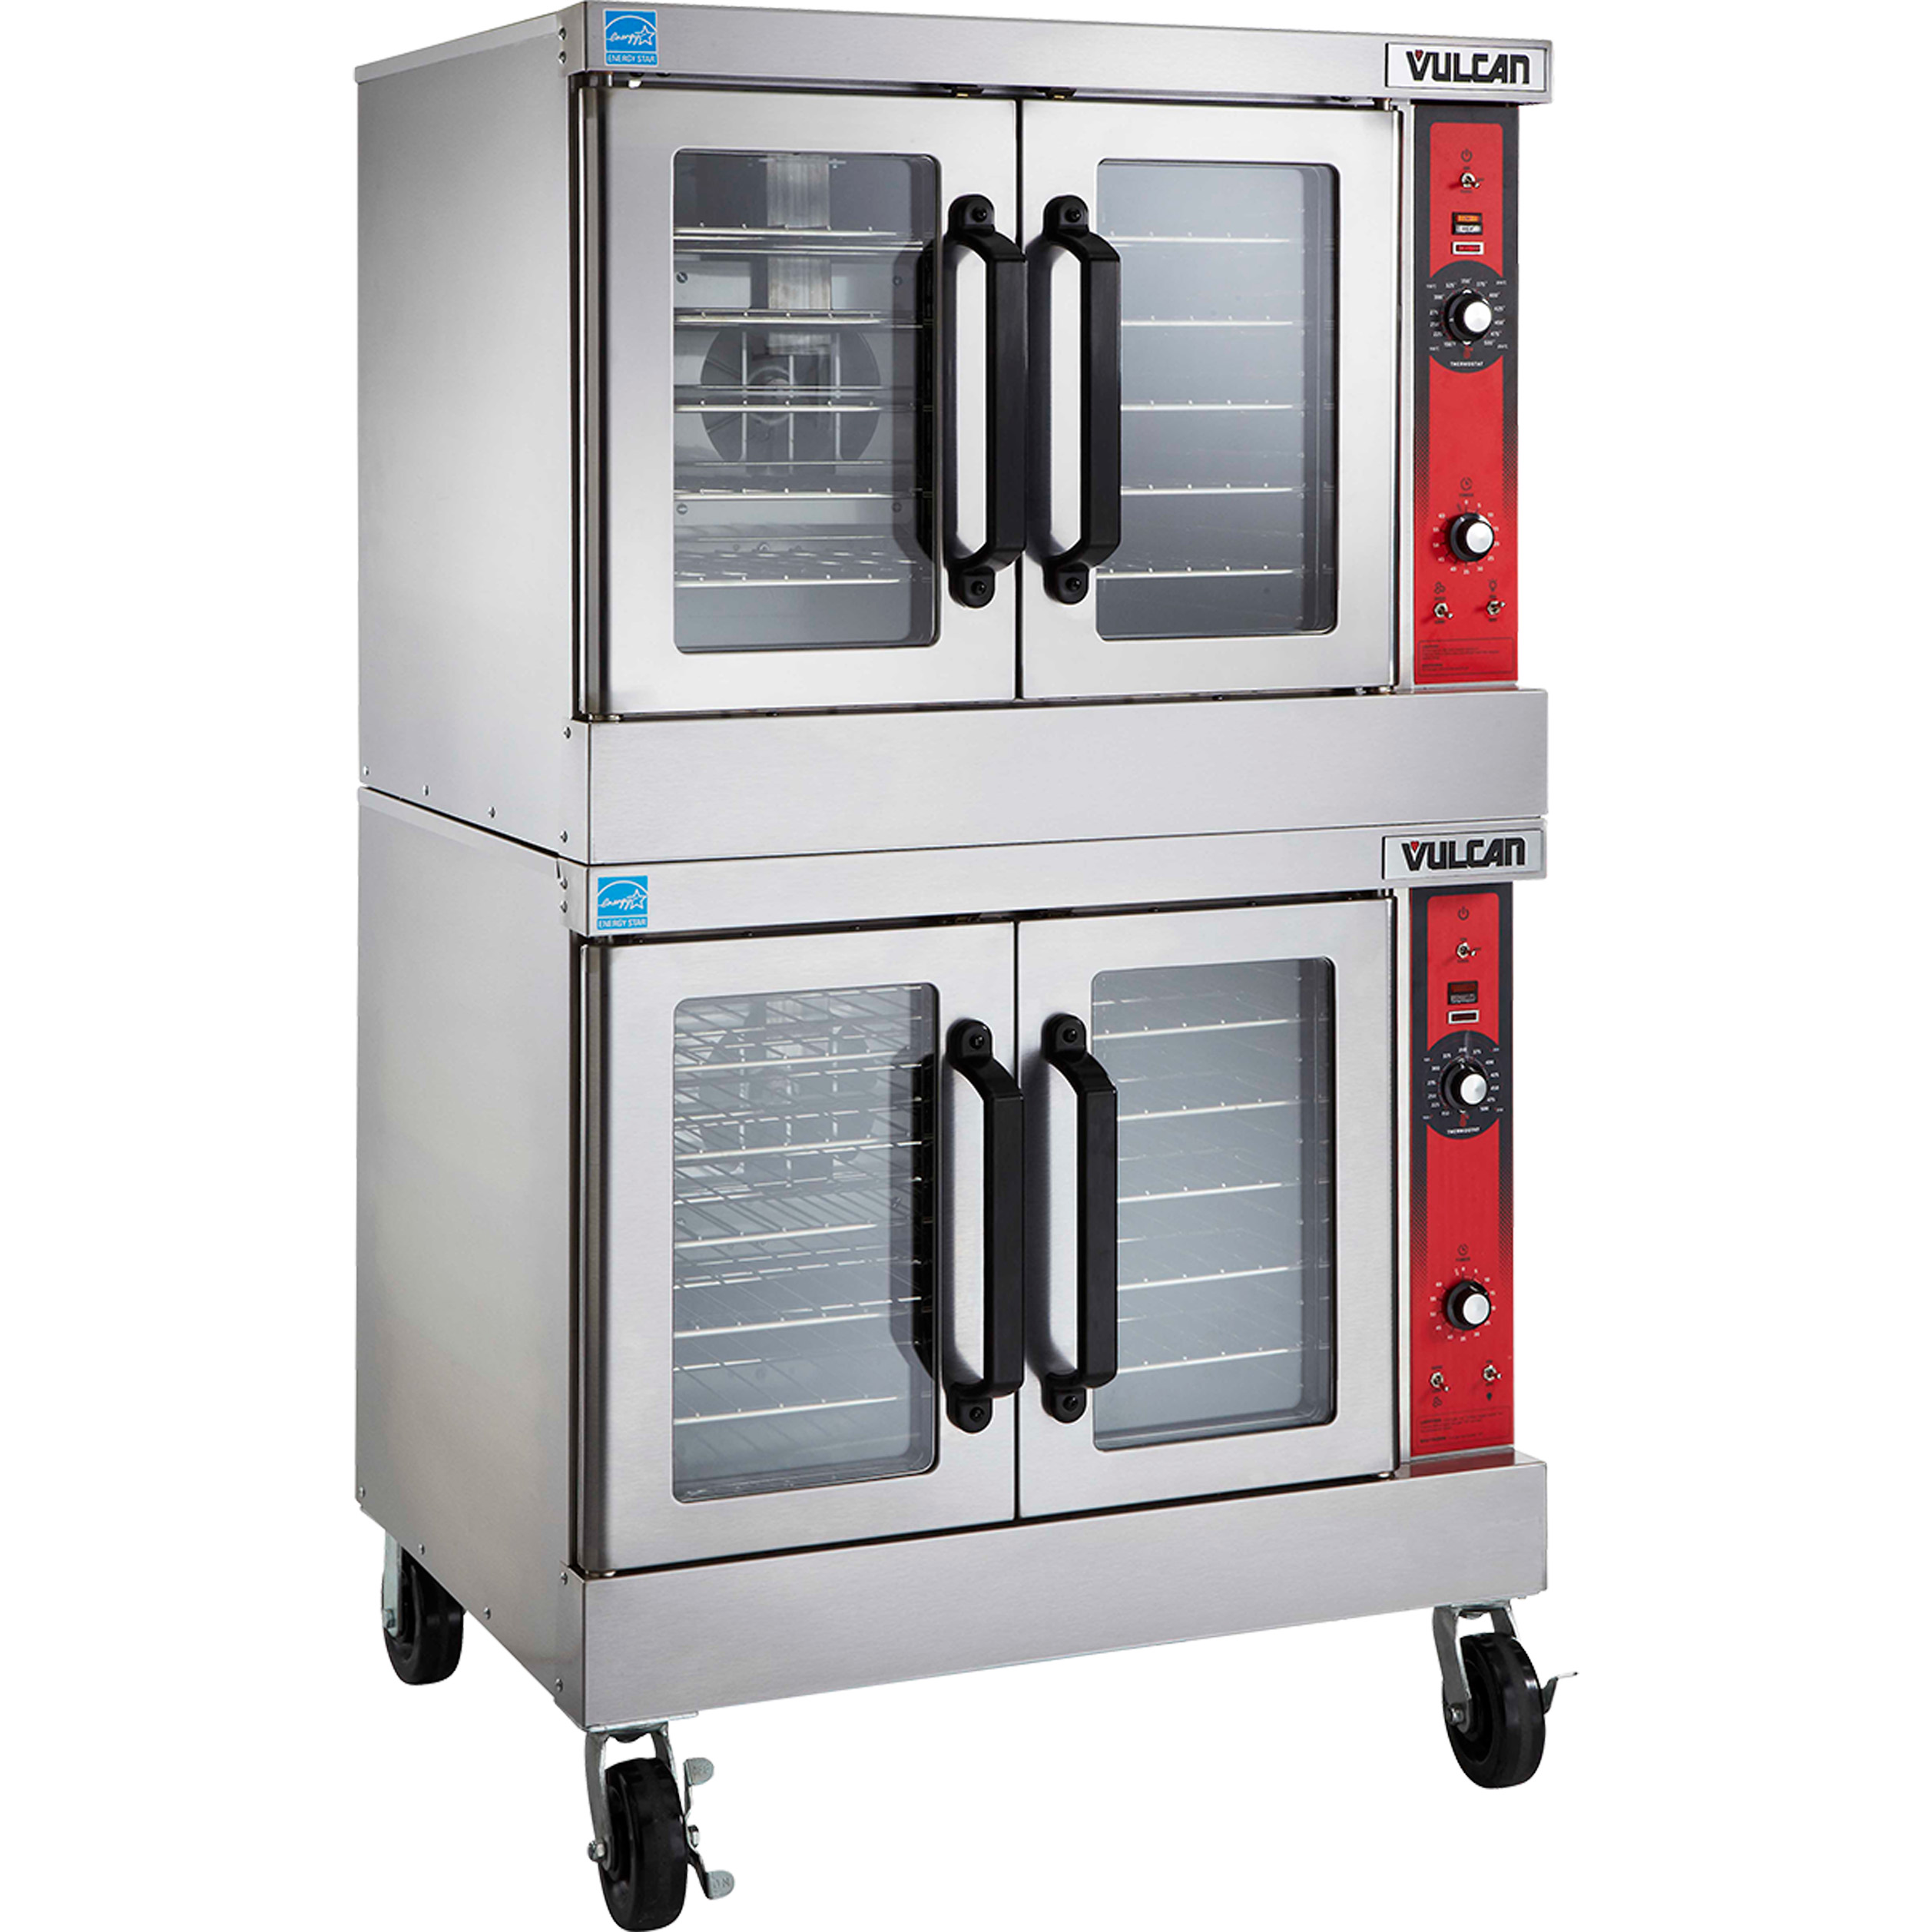 Vulcan VC44GC convection oven, gas